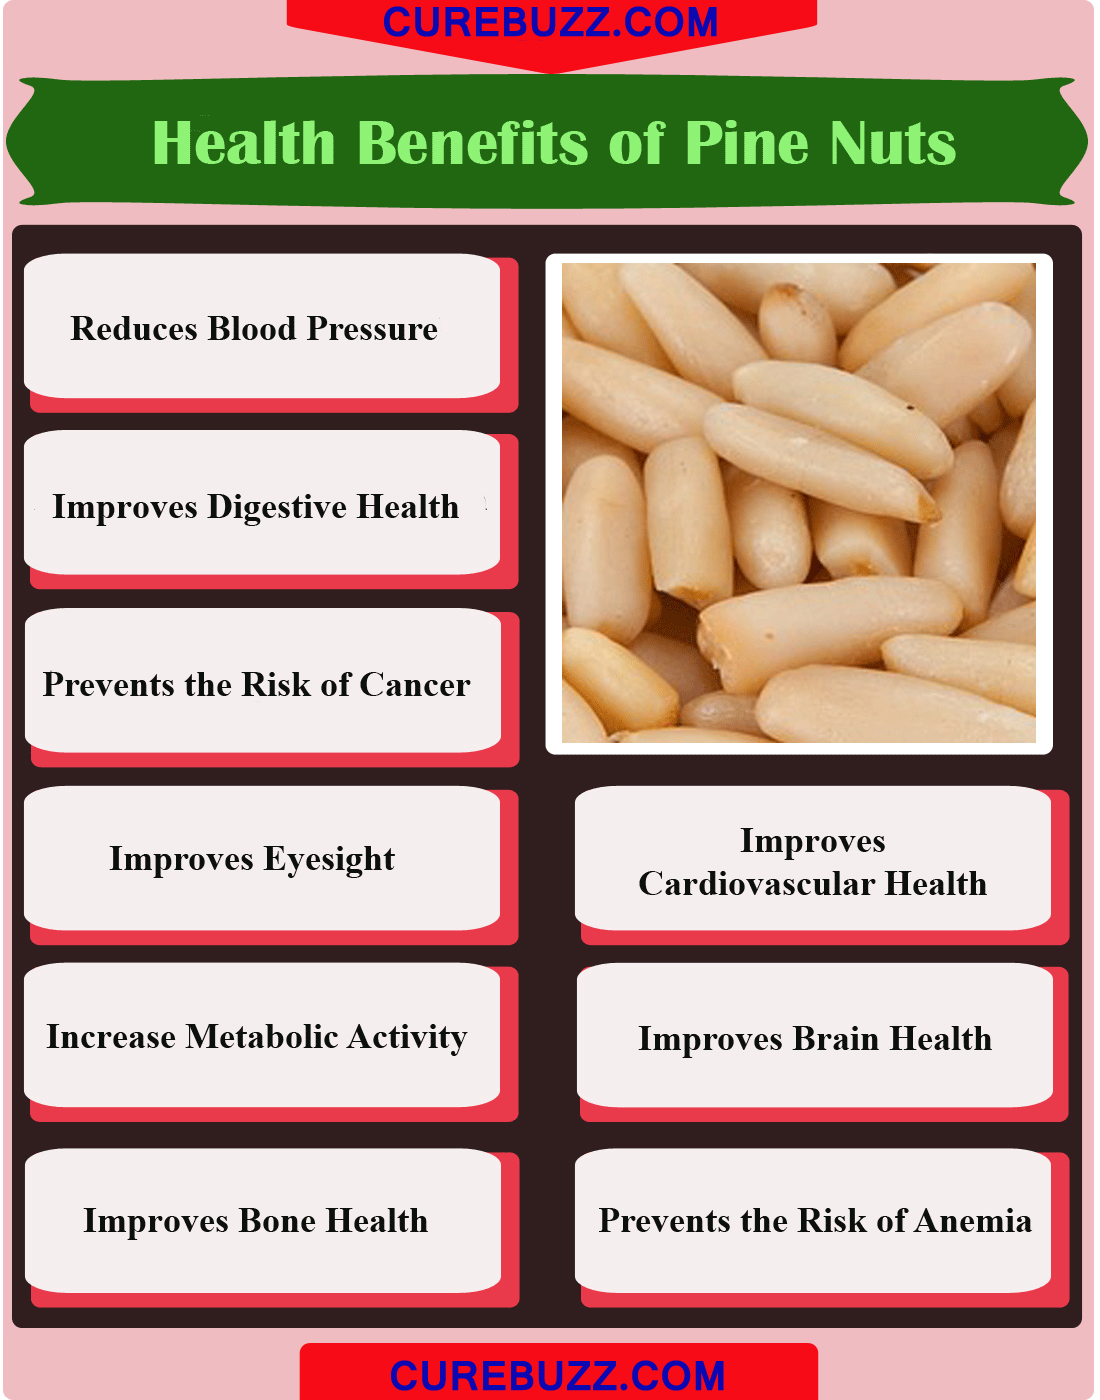 Health Benefits of Pine Nuts